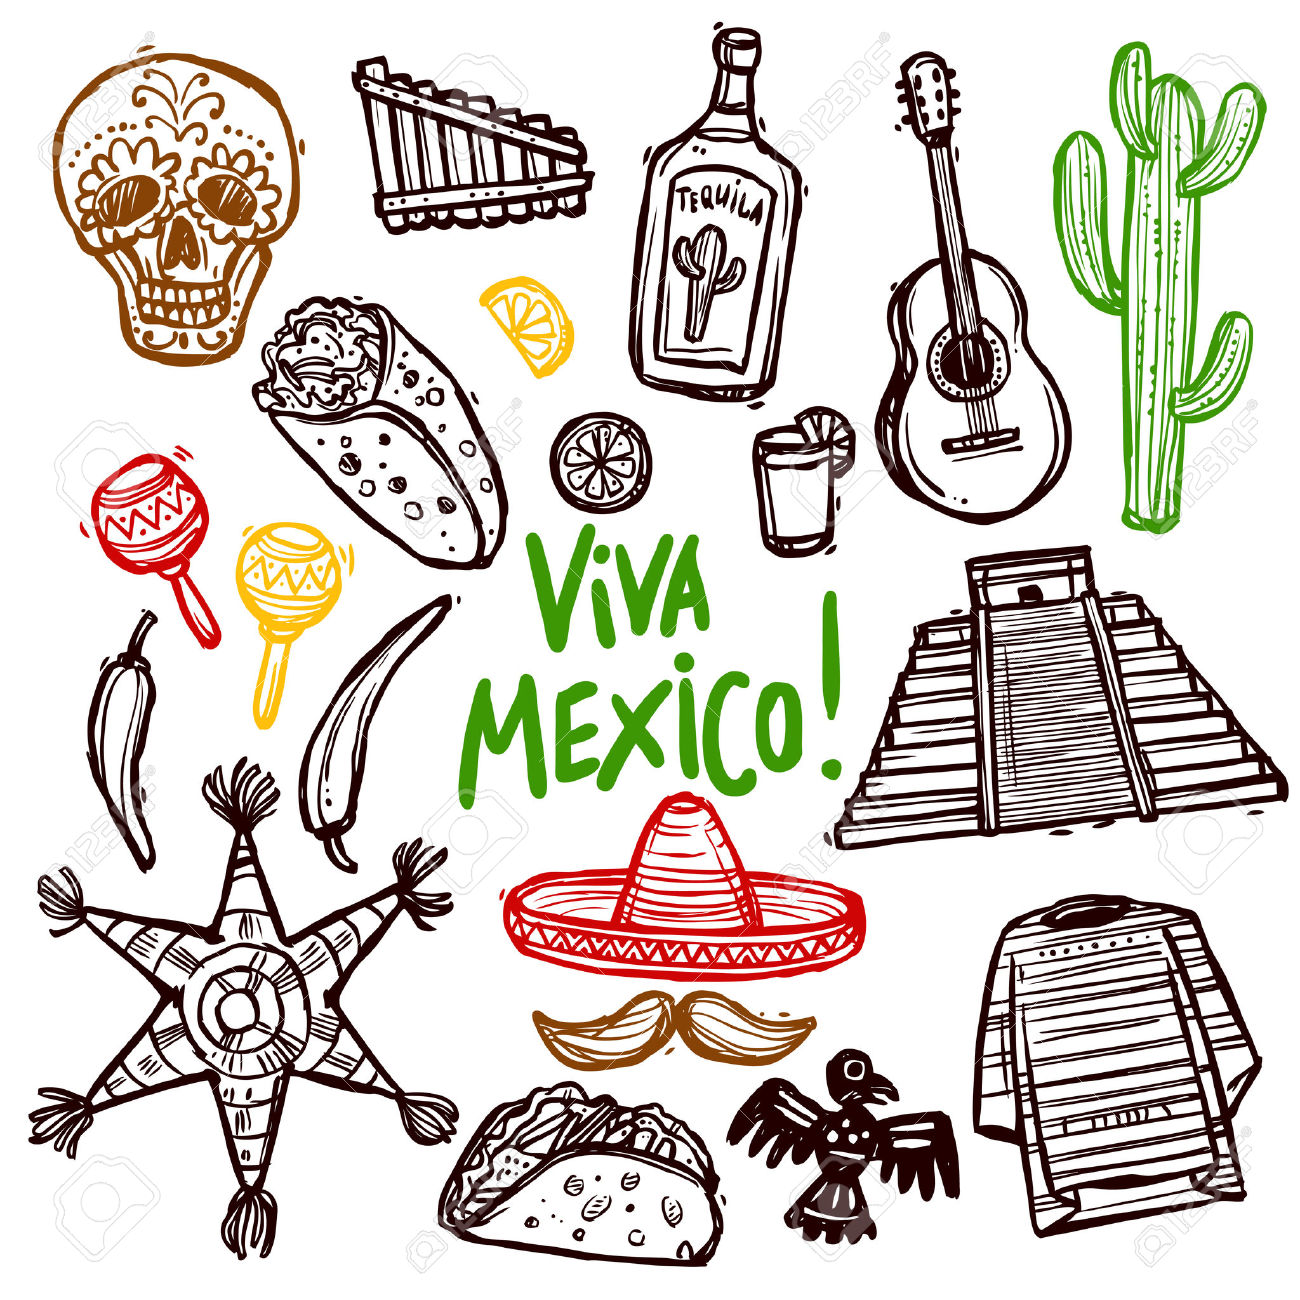 Mexico clipart drawing. Mexican food at getdrawings